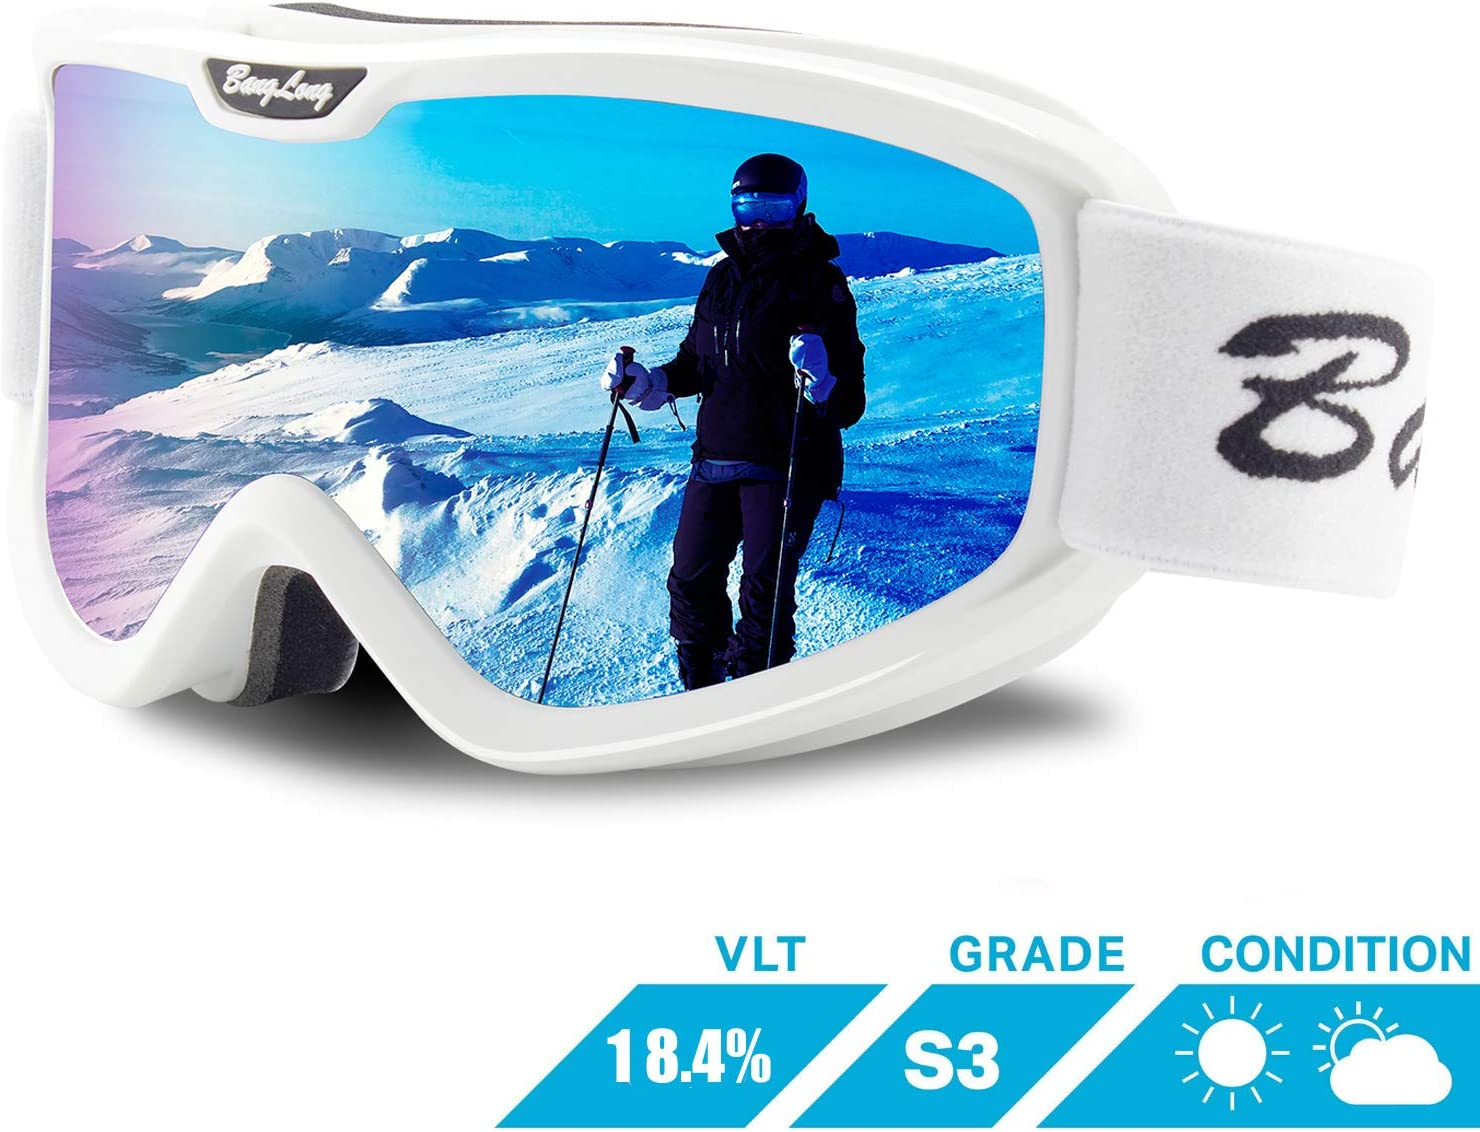 BangLong Ski Goggles, Anti Fog Snow Goggles Over Glasses OTG Snowboard Goggles for Men Women Youth 100% UV Protection Windproof Dual Lens for Skiing Skating Outdoor Sport